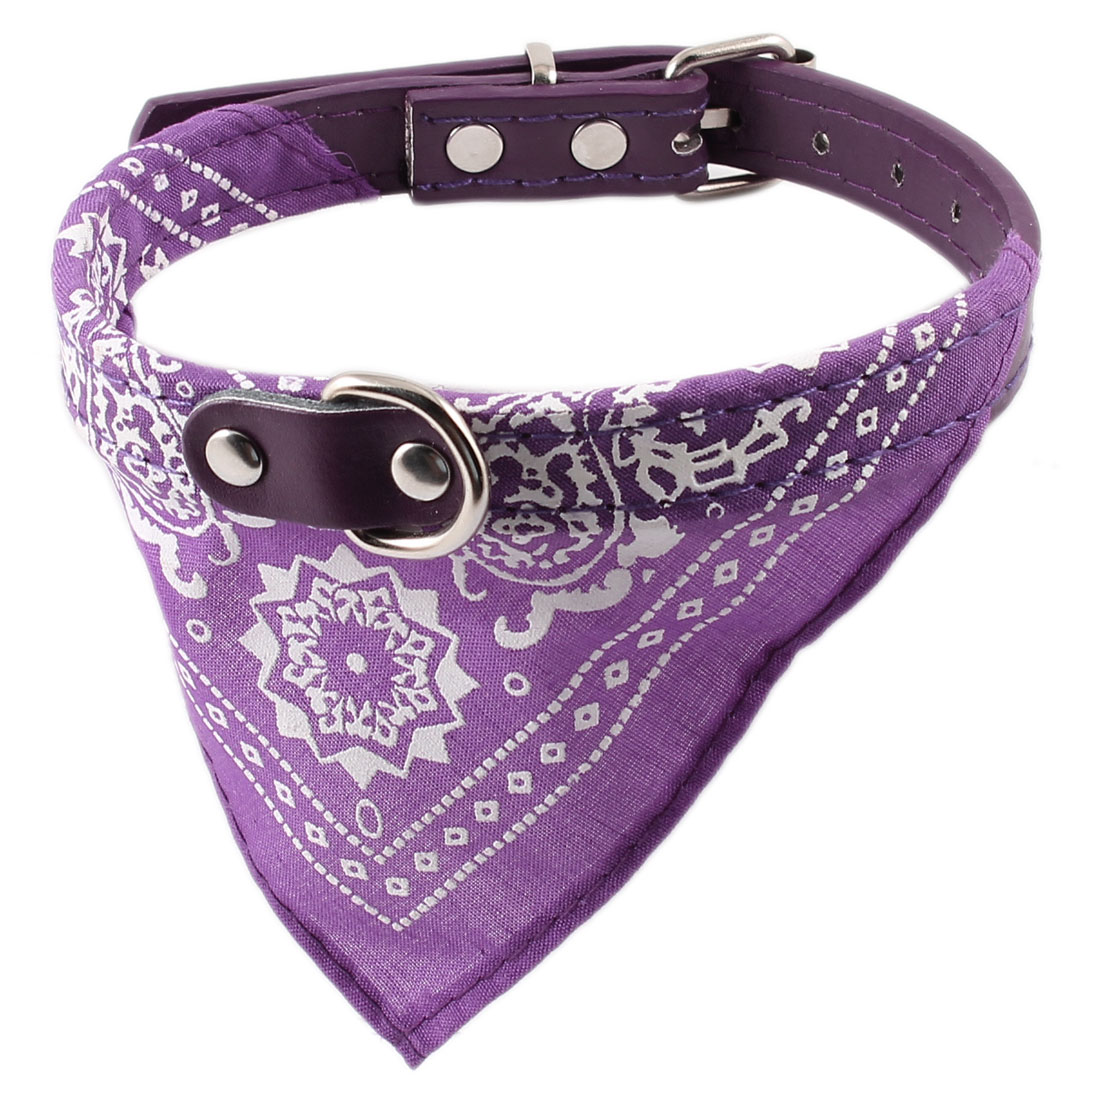 Purple Single Prong Buckle Adjustable Faux Leather Belt Pet Cat Dog Bandana Collar Neckerchief Neck Scarf Triangular Binder